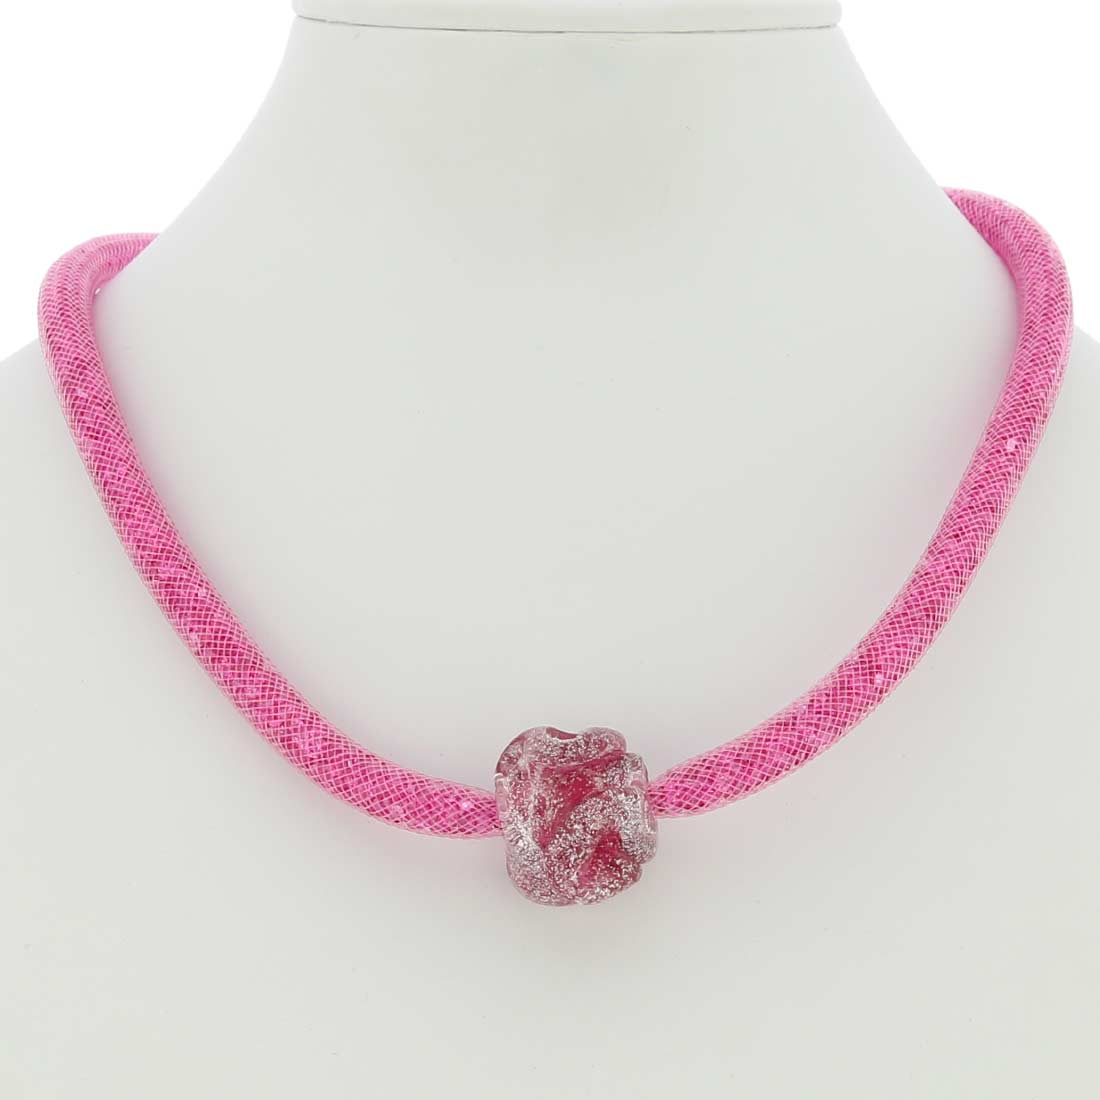 Murano Rose Flower Necklace - Pink